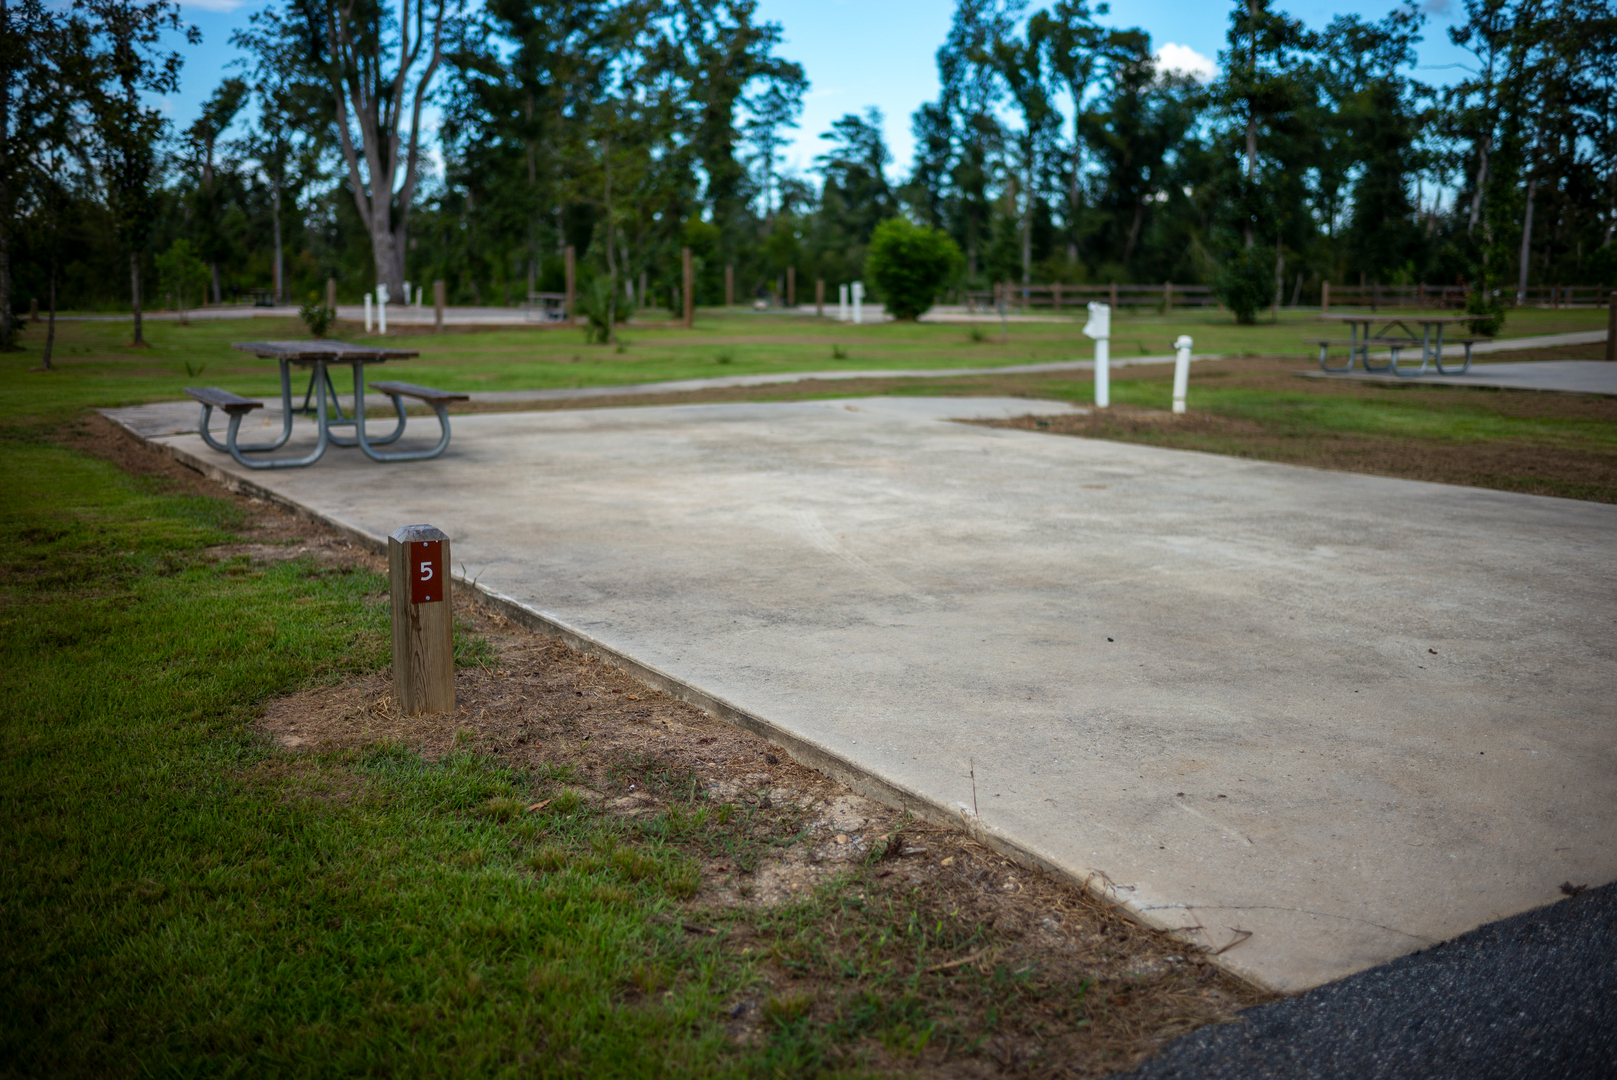 Campsite 5 with a concrete pad, picnic table and full hook ups at Florida Caverns State Park.